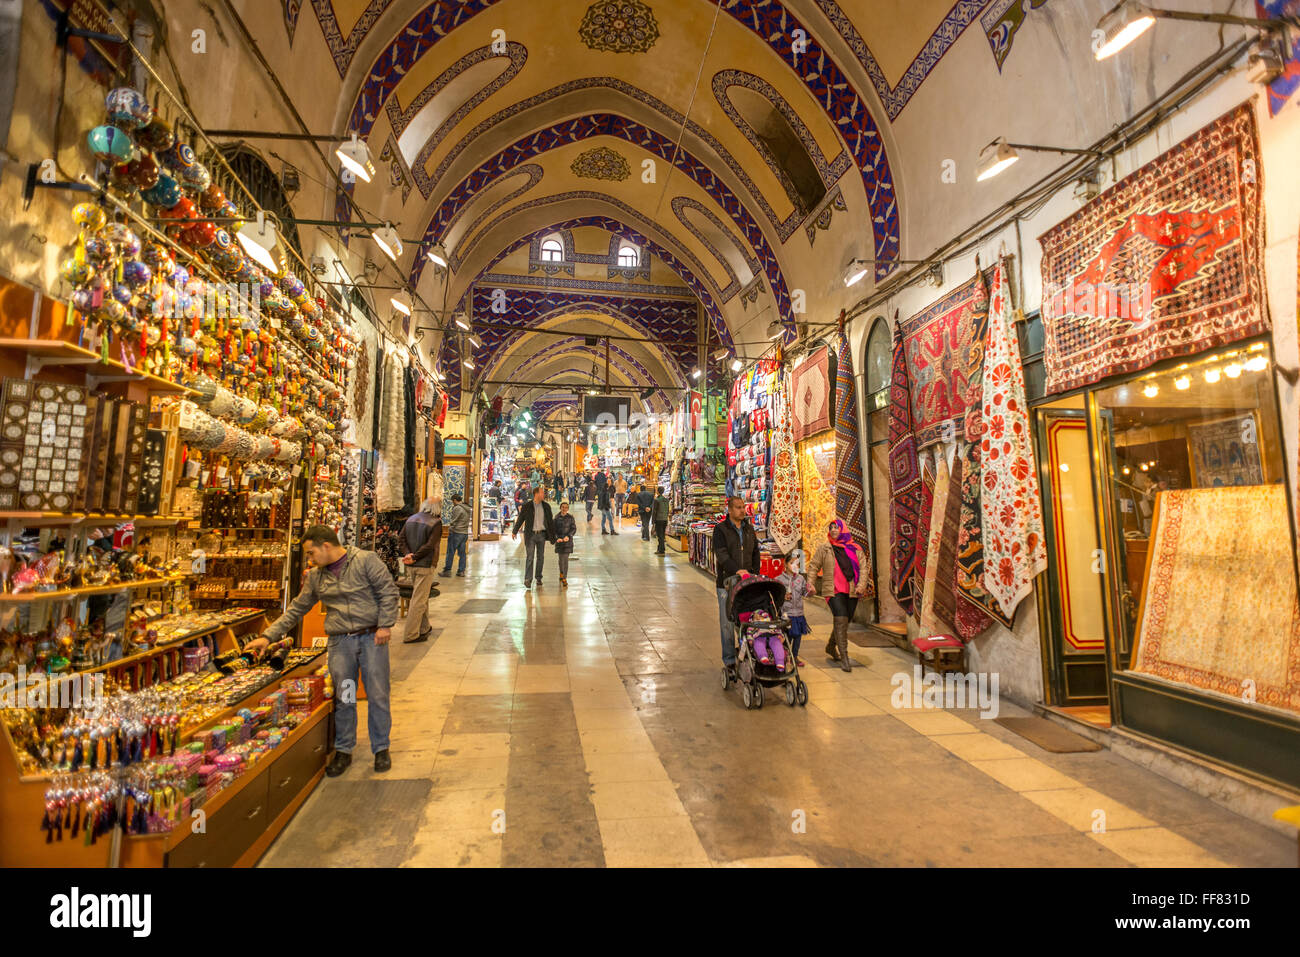 Inside the Grand Bazaar of Istanbul, Turkey, one of the largest and oldest covered markets in the world. - Stock Image